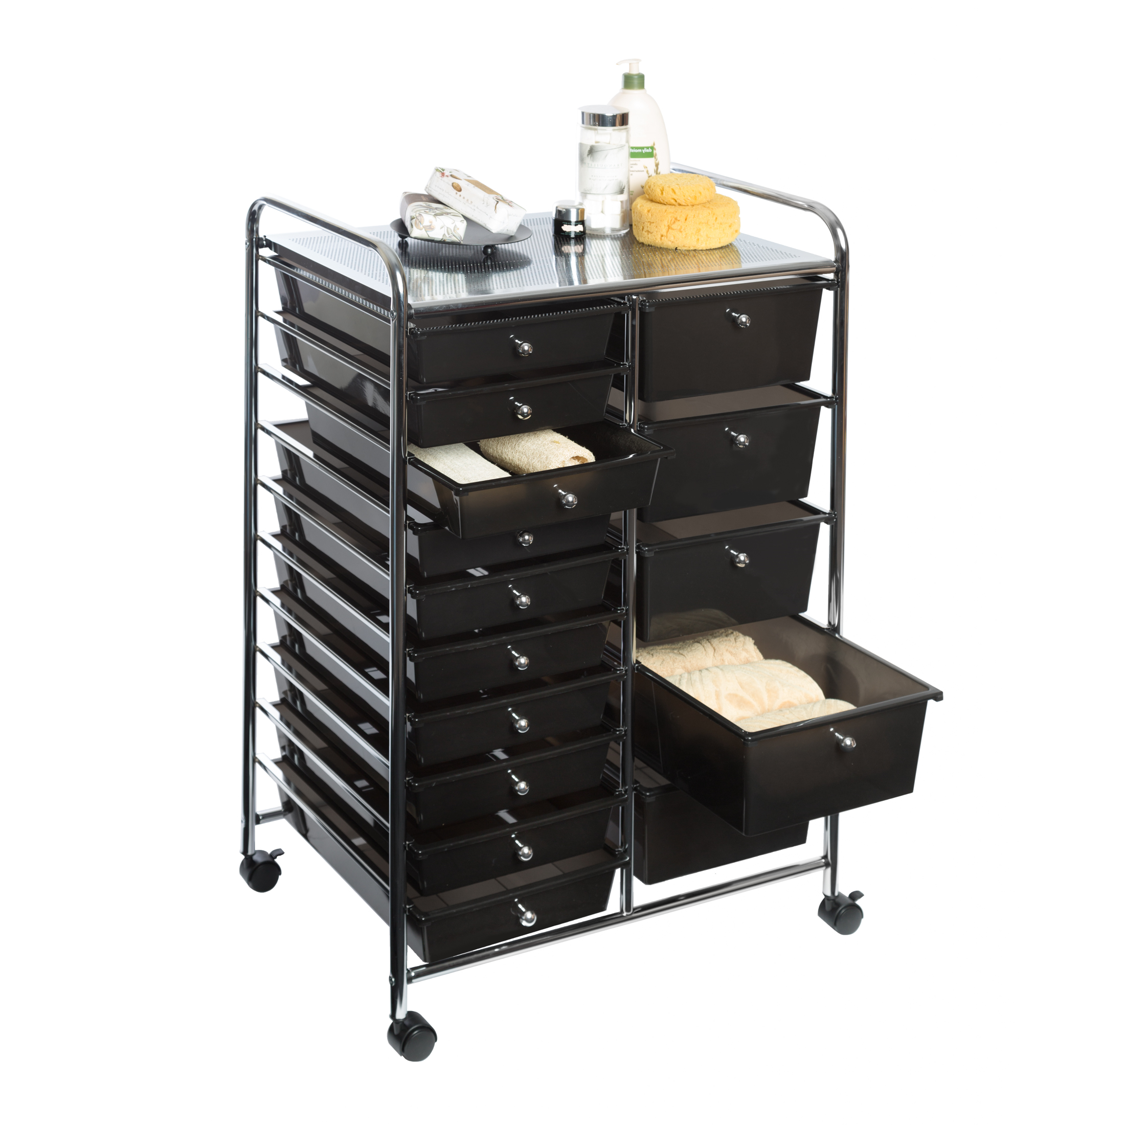 15 Drawer Organizer Cart W Wheels Black By Seville Classics Walmart Com In 2020 Organization Cart Drawer Organisers Desk Organization